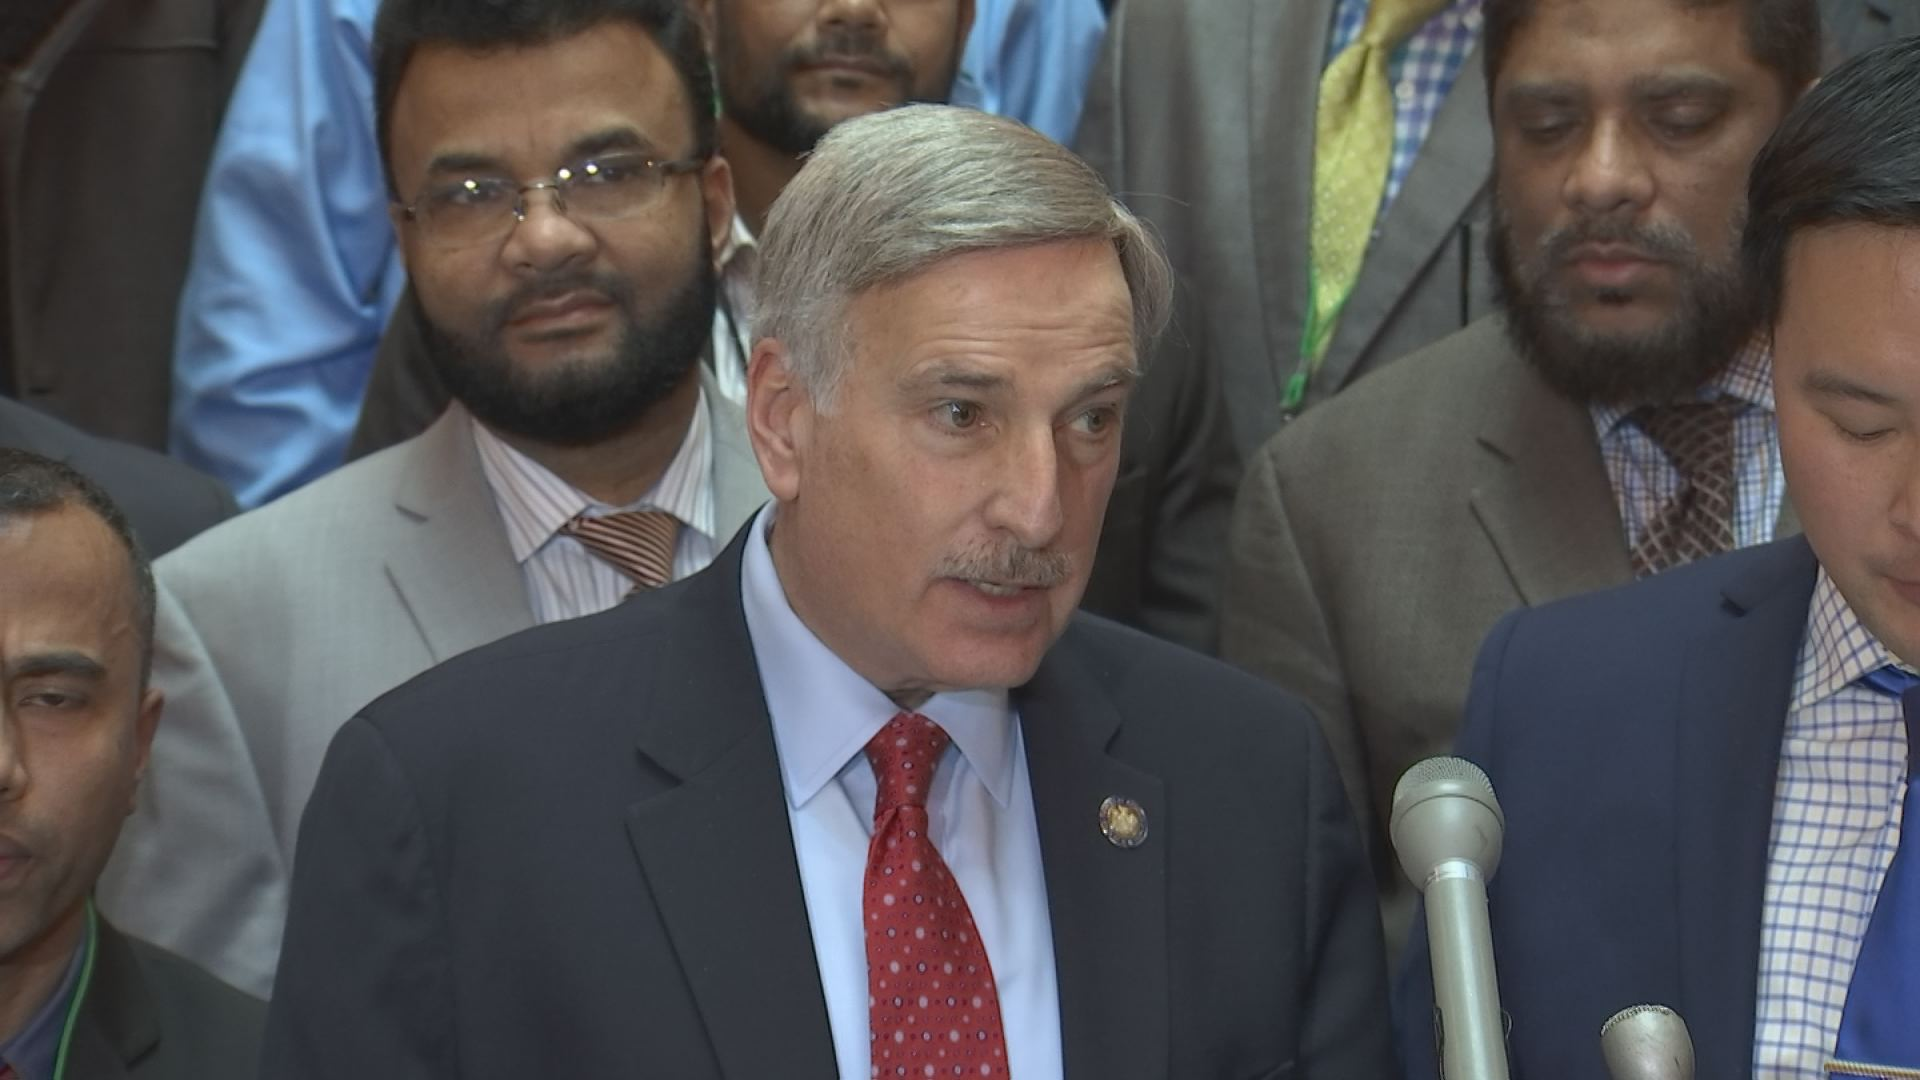 Weprin Working to Protect Taxi Drivers from Assault